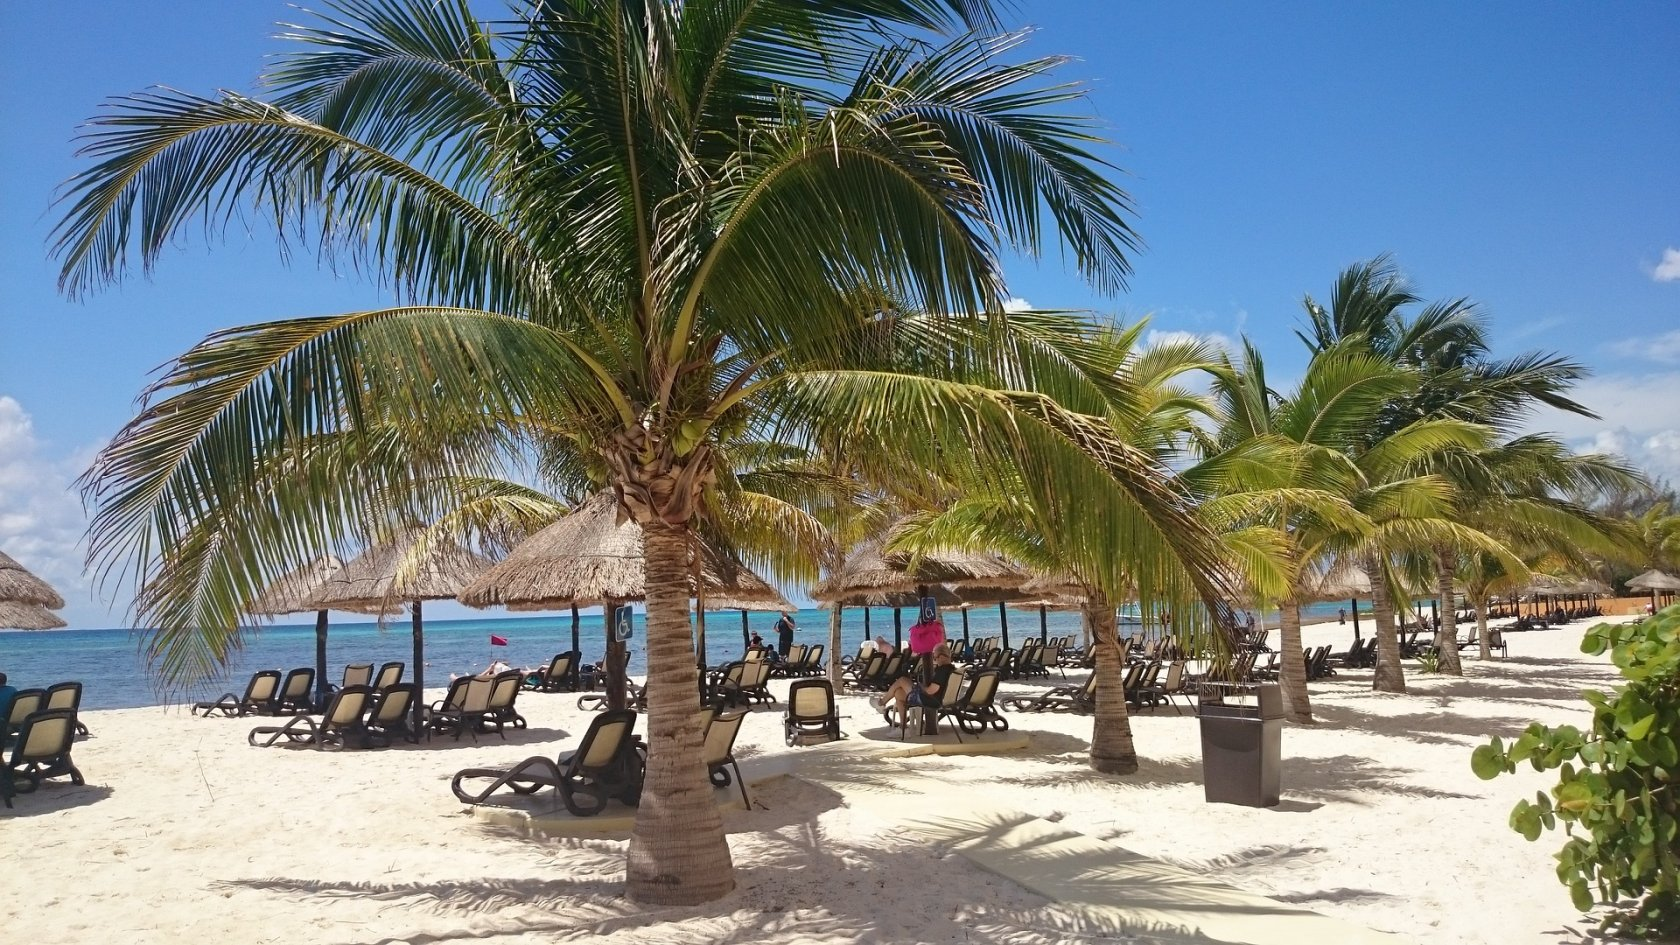 Top Things to See in Cancun